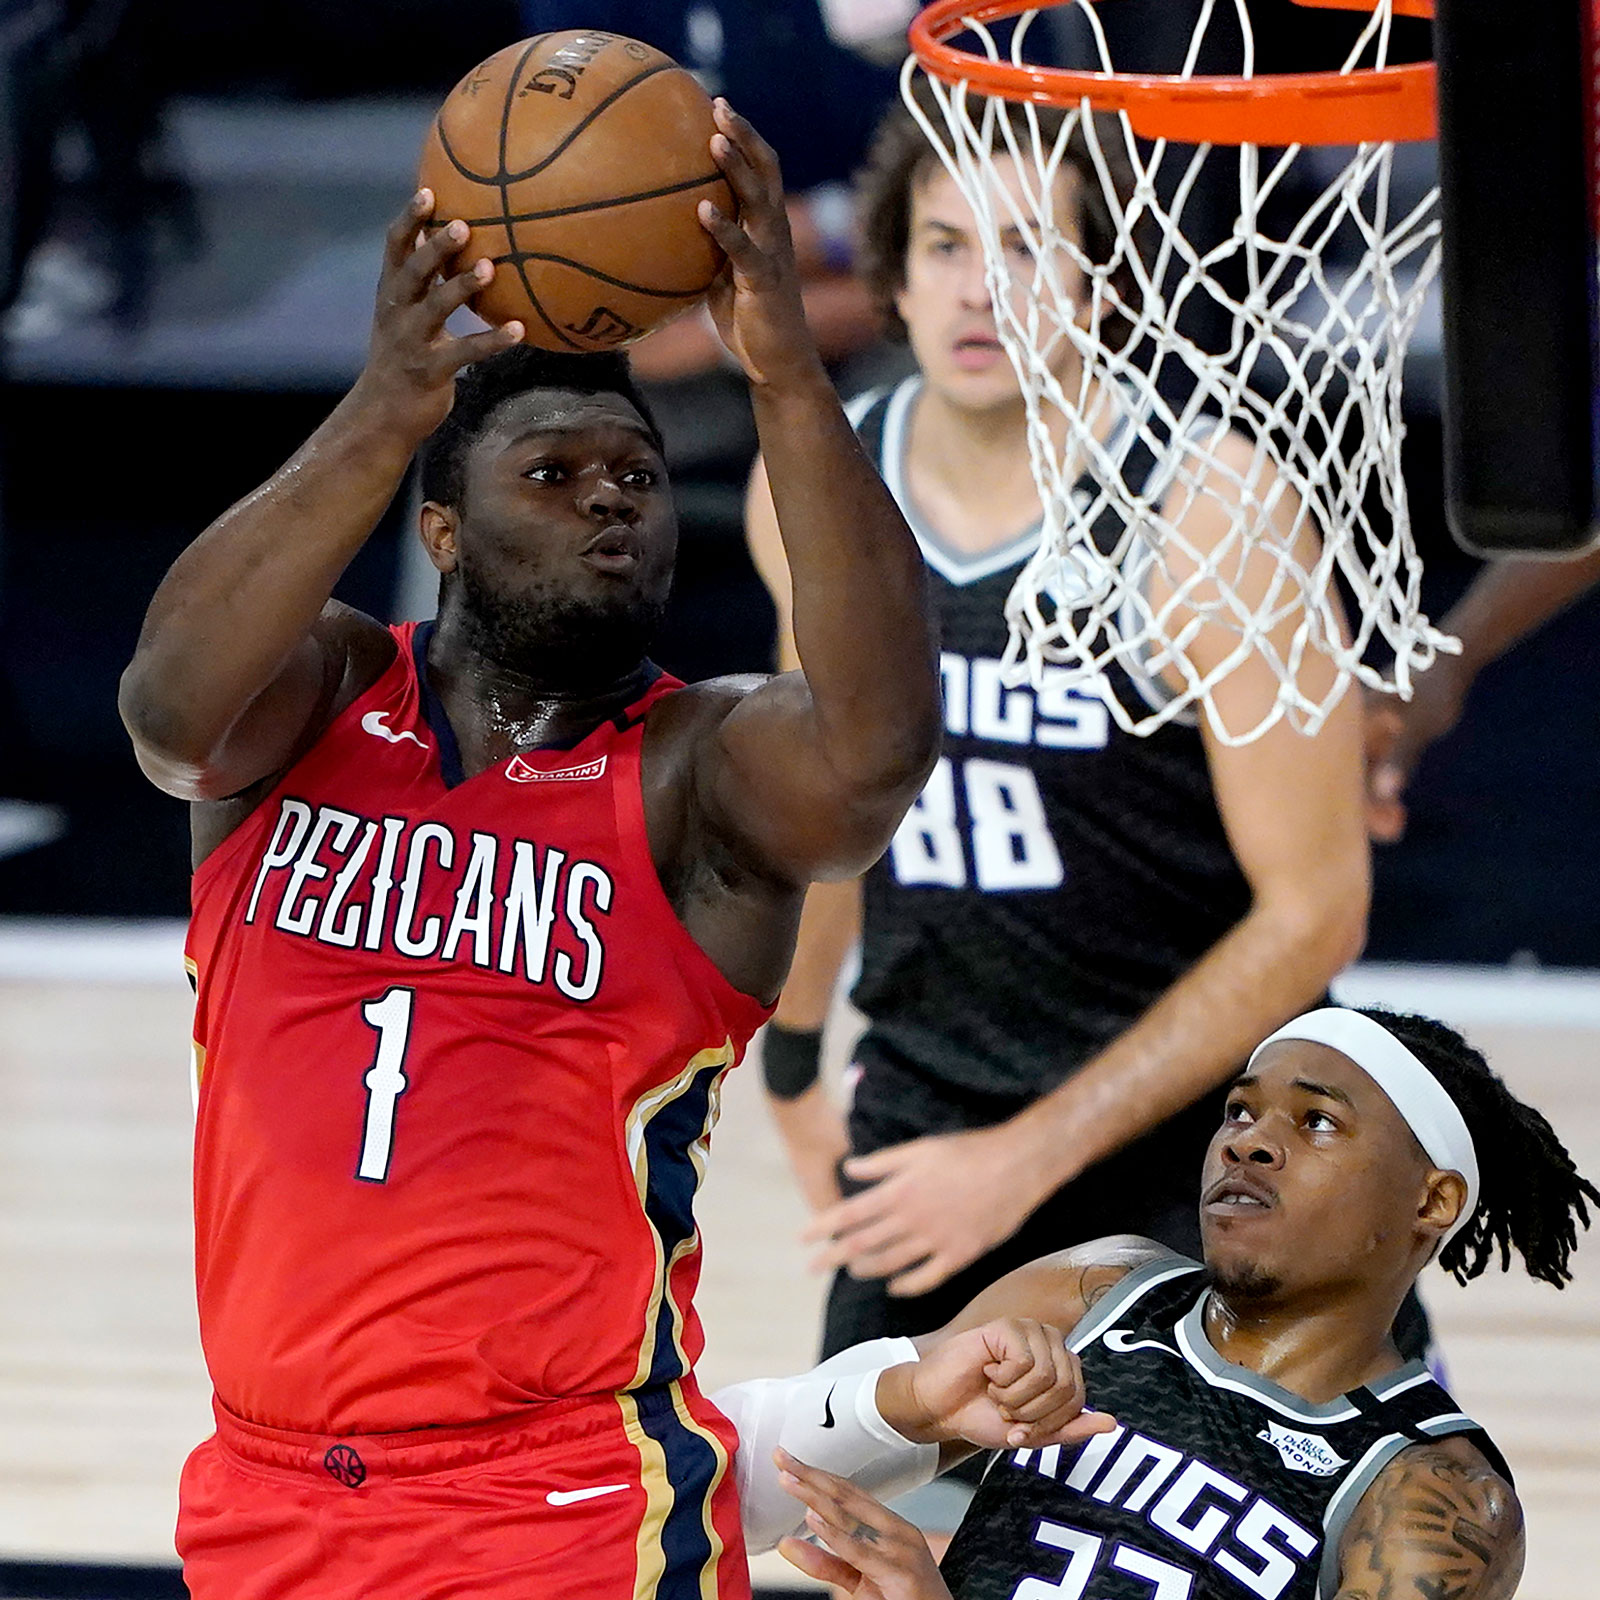 Zion Williamson #1 of the New Orleans Pelicans goes up for a basket against Richaun Holmes #22 of the Sacramento Kings during the first half of an NBA basketball game at HP Field House at ESPN Wide World Of Sports Complex on August 6, 2020 in Lake Buena Vista, Florida.